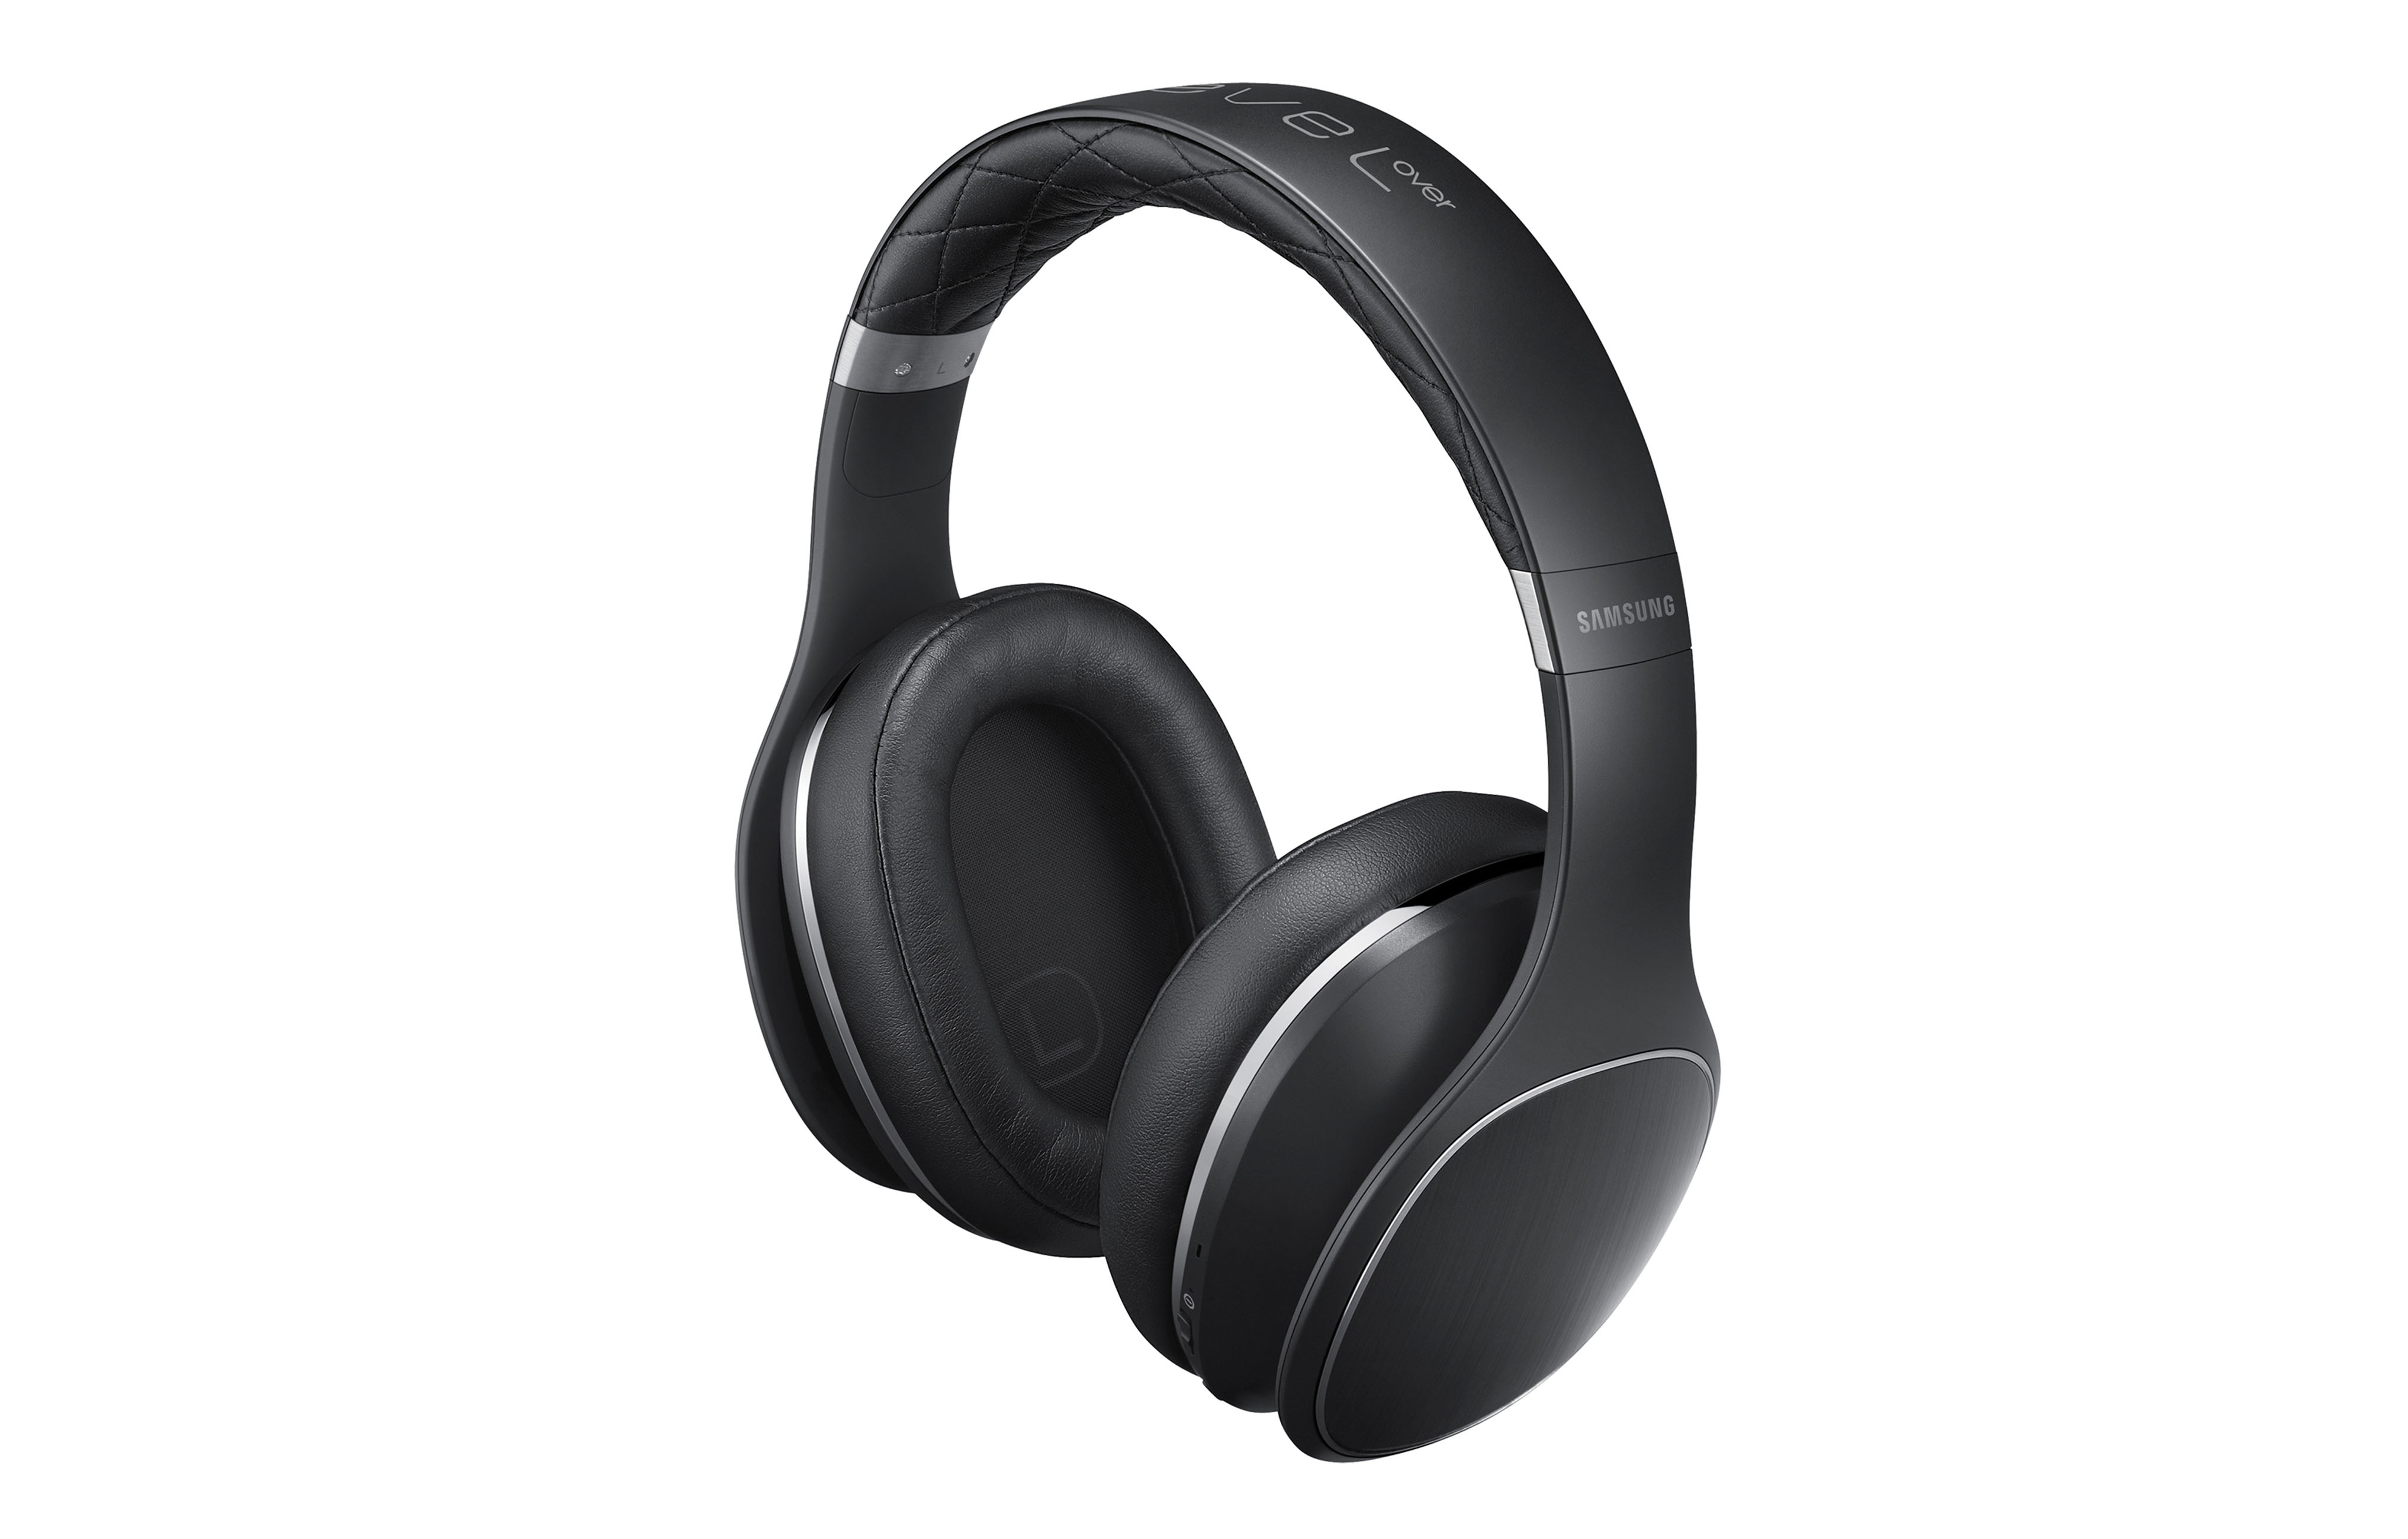 samsung headphones samsung level headphones and speakers officially announced